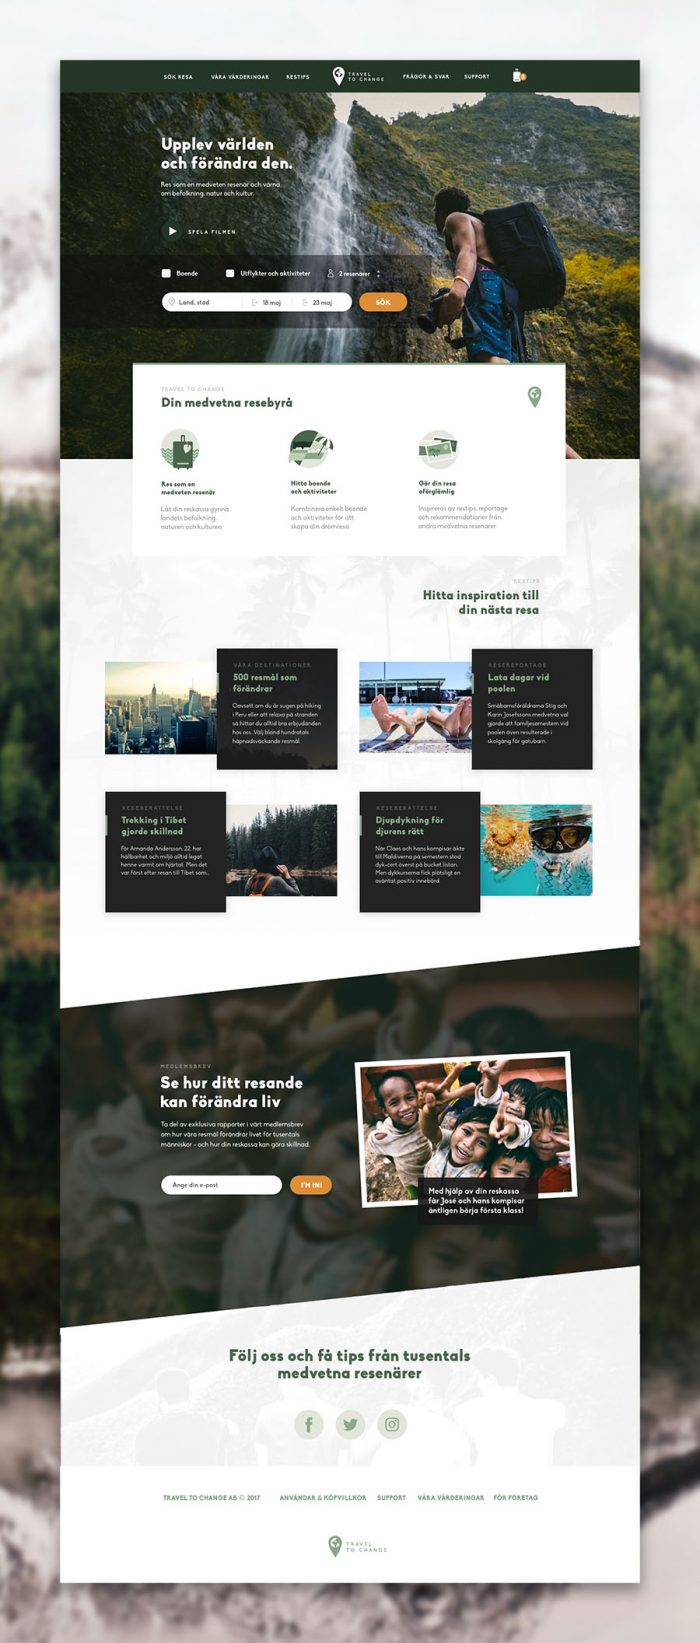 UX design eco-friendly travel website